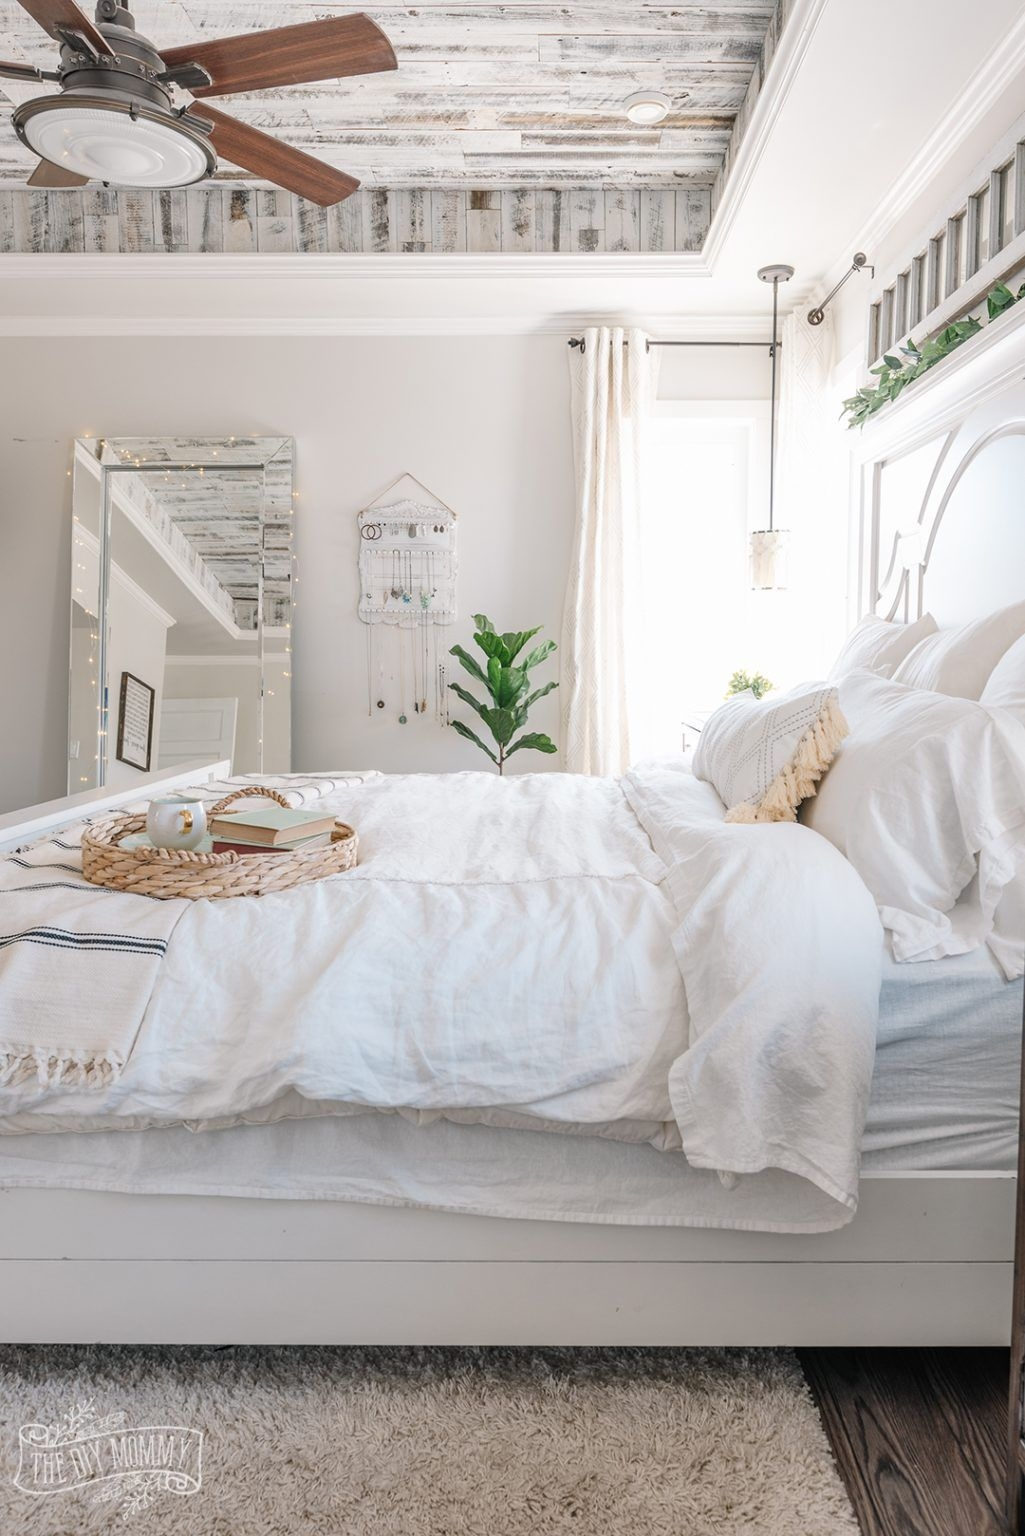 Awe-inspiring Boho Farmhouse Bedding On Decorative How to Decorate Your Bedroom without Ing Anything On Boho Farmhouse Bedding